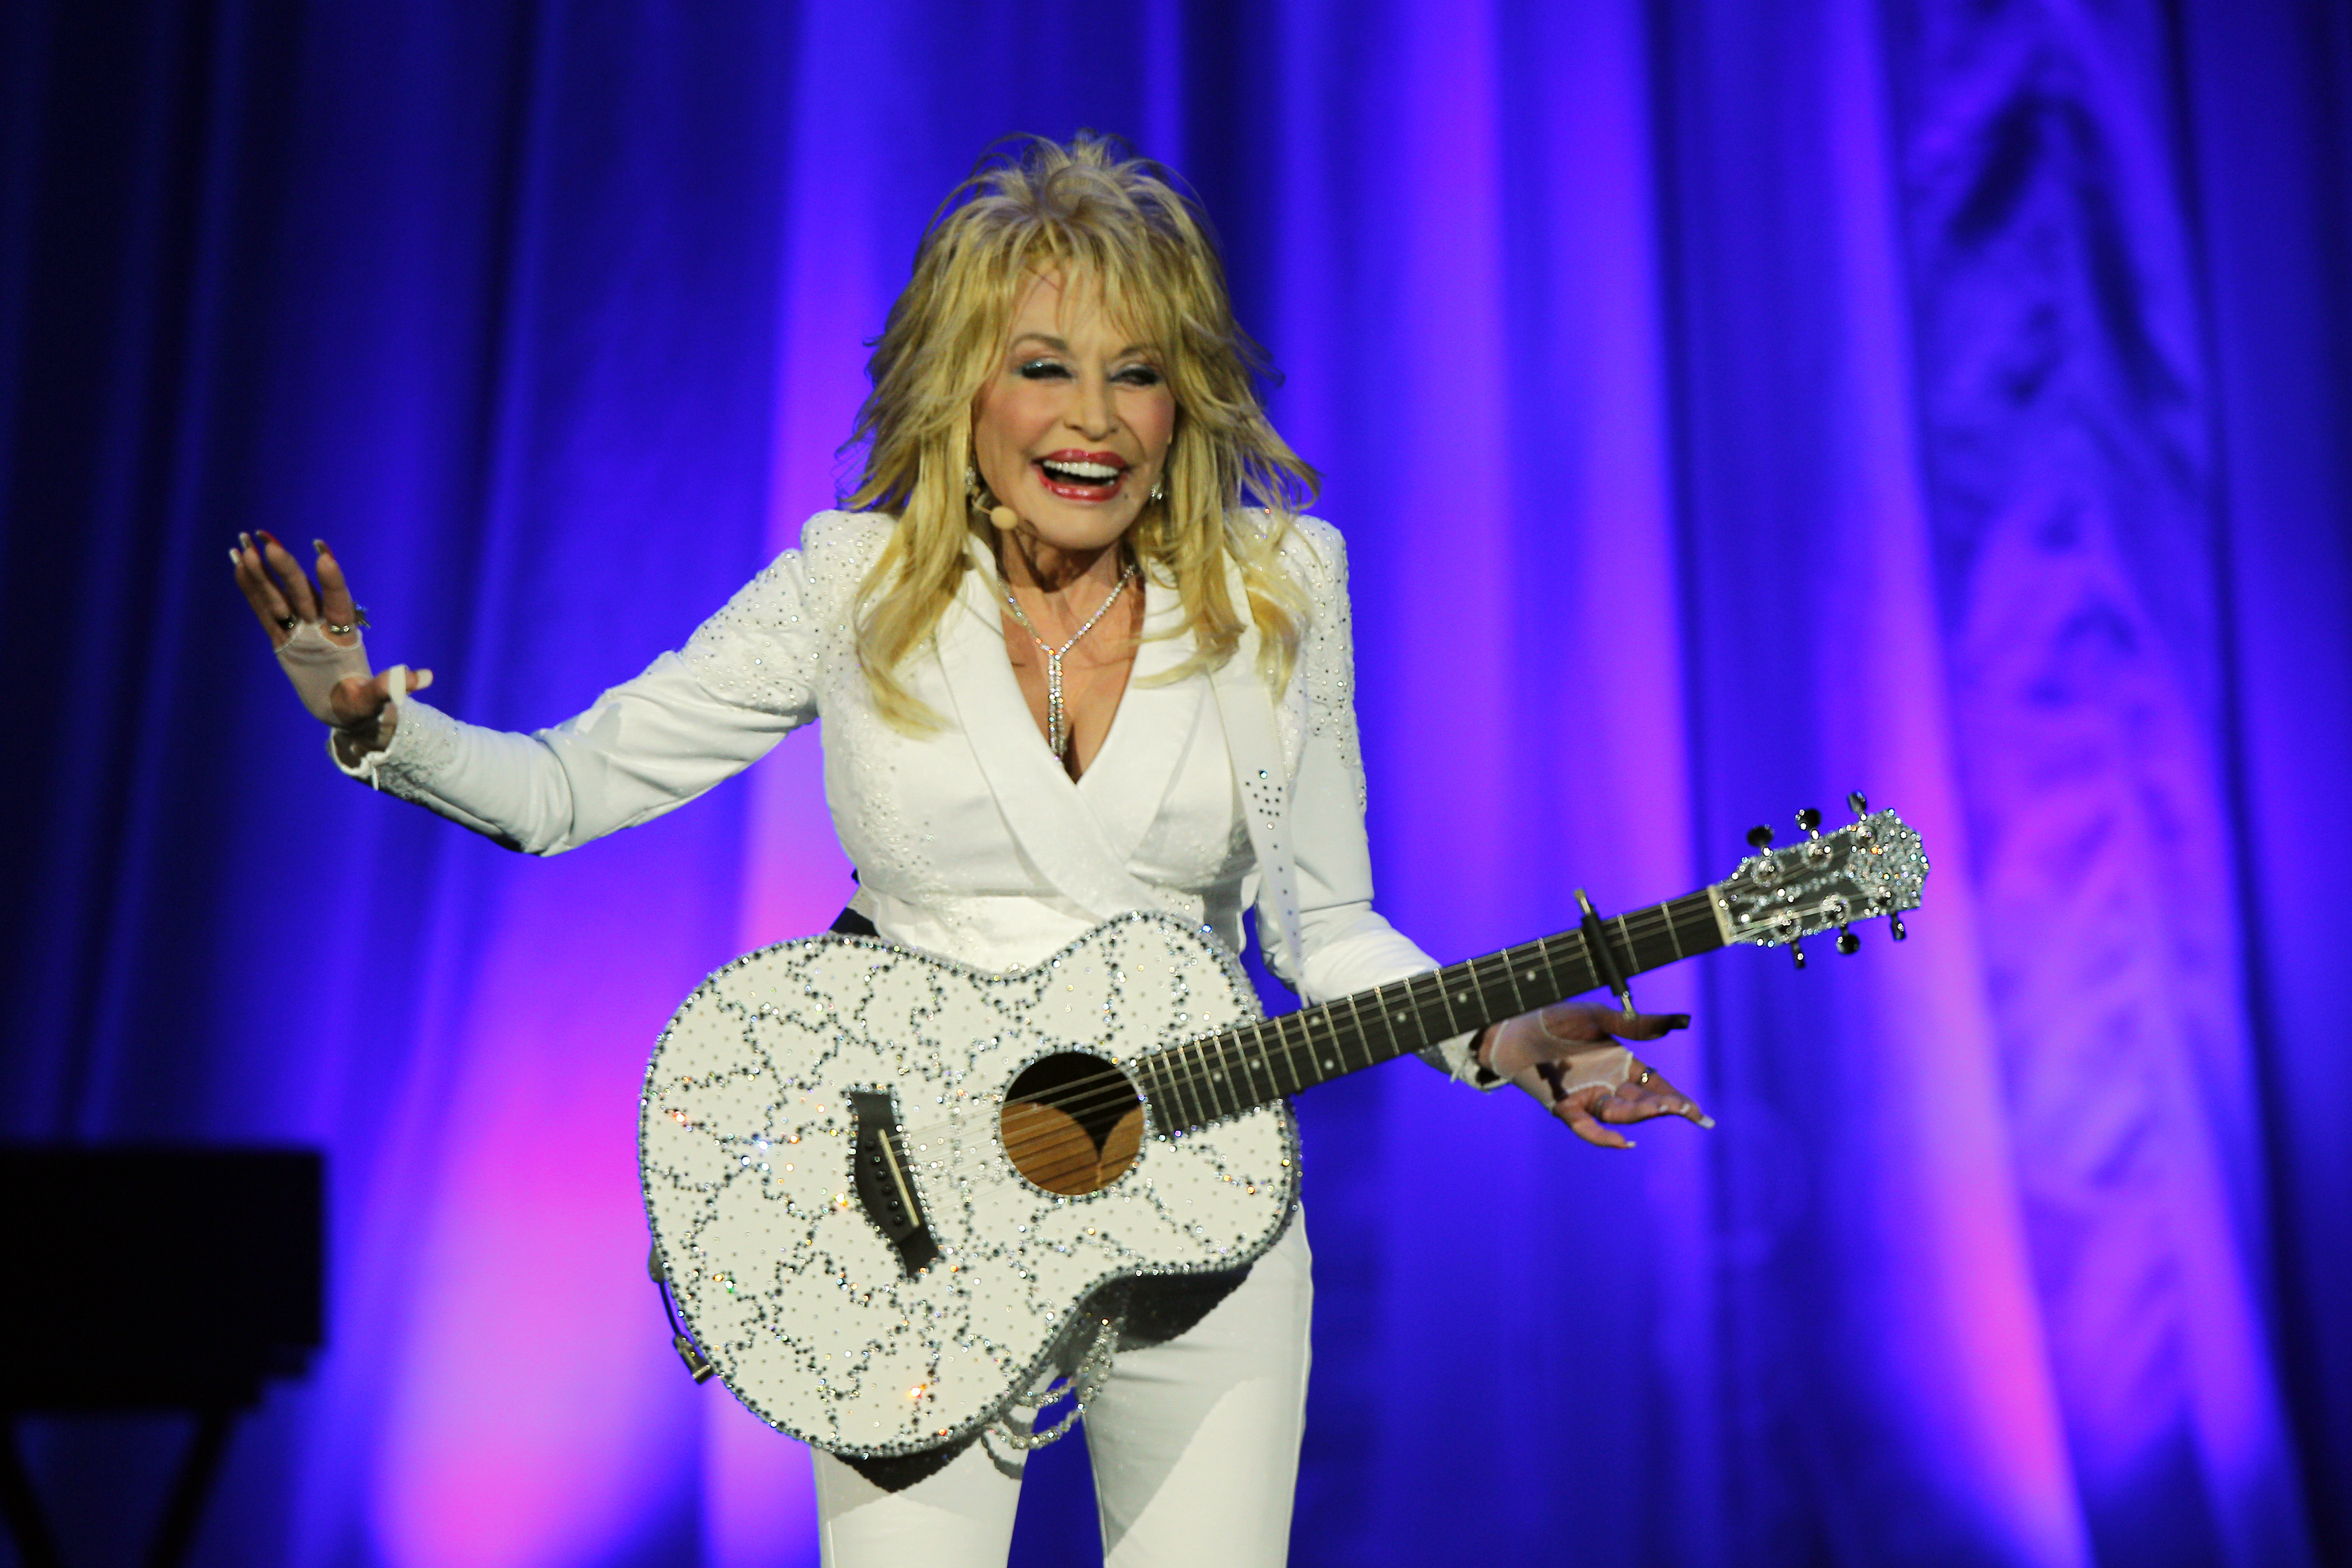 Dolly Parton comes to Wolf Trap with first major tour in 25 years